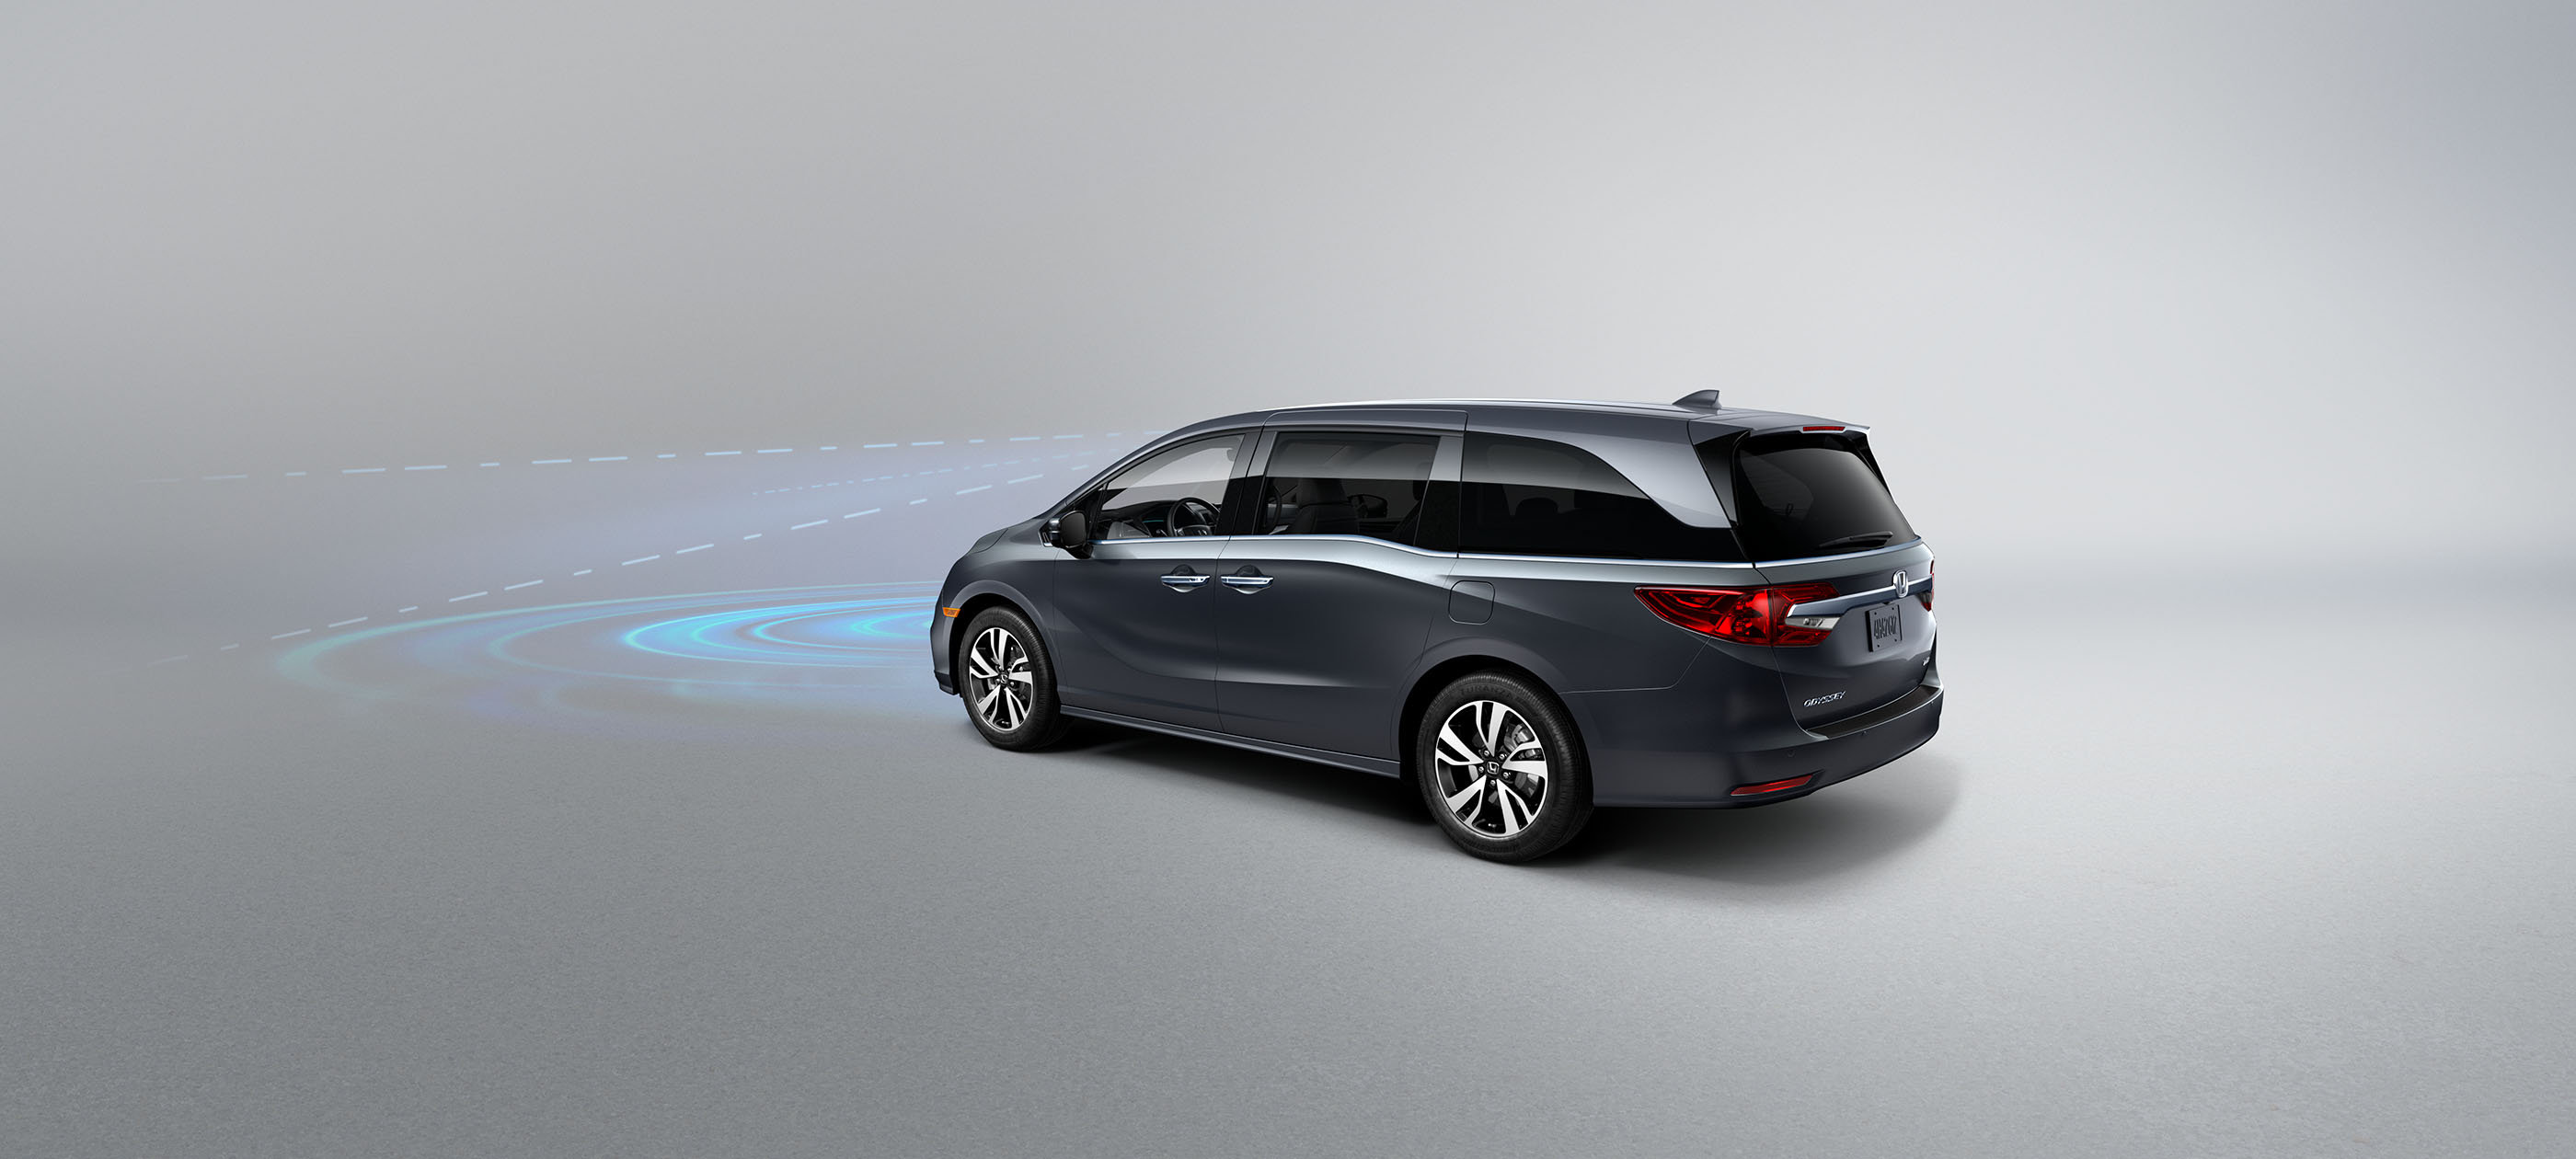 Front driver-side view of the 2020 Honda Odyssey in Forest Mist Metallic, with illustrated Honda Sensing® graphics demonstrating Collision Mitigation Braking System™.